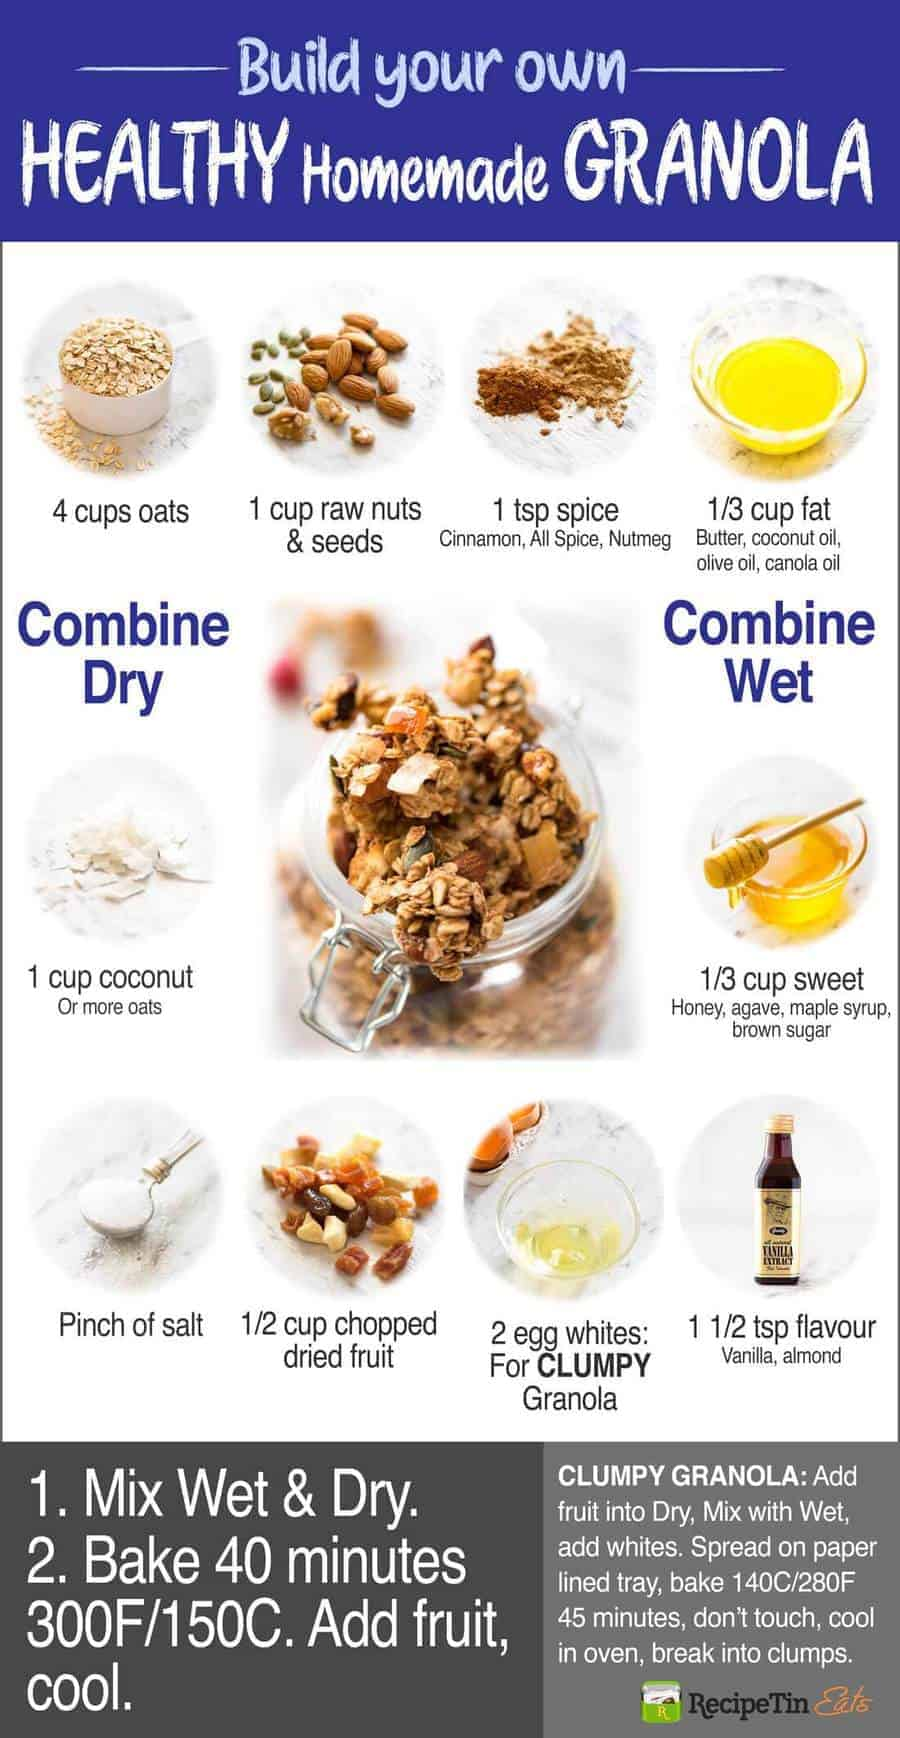 The Ultimate Guide - Build Your Own Healthy Homemade Granola, loose or CLUMPY! www.recipetineats.com